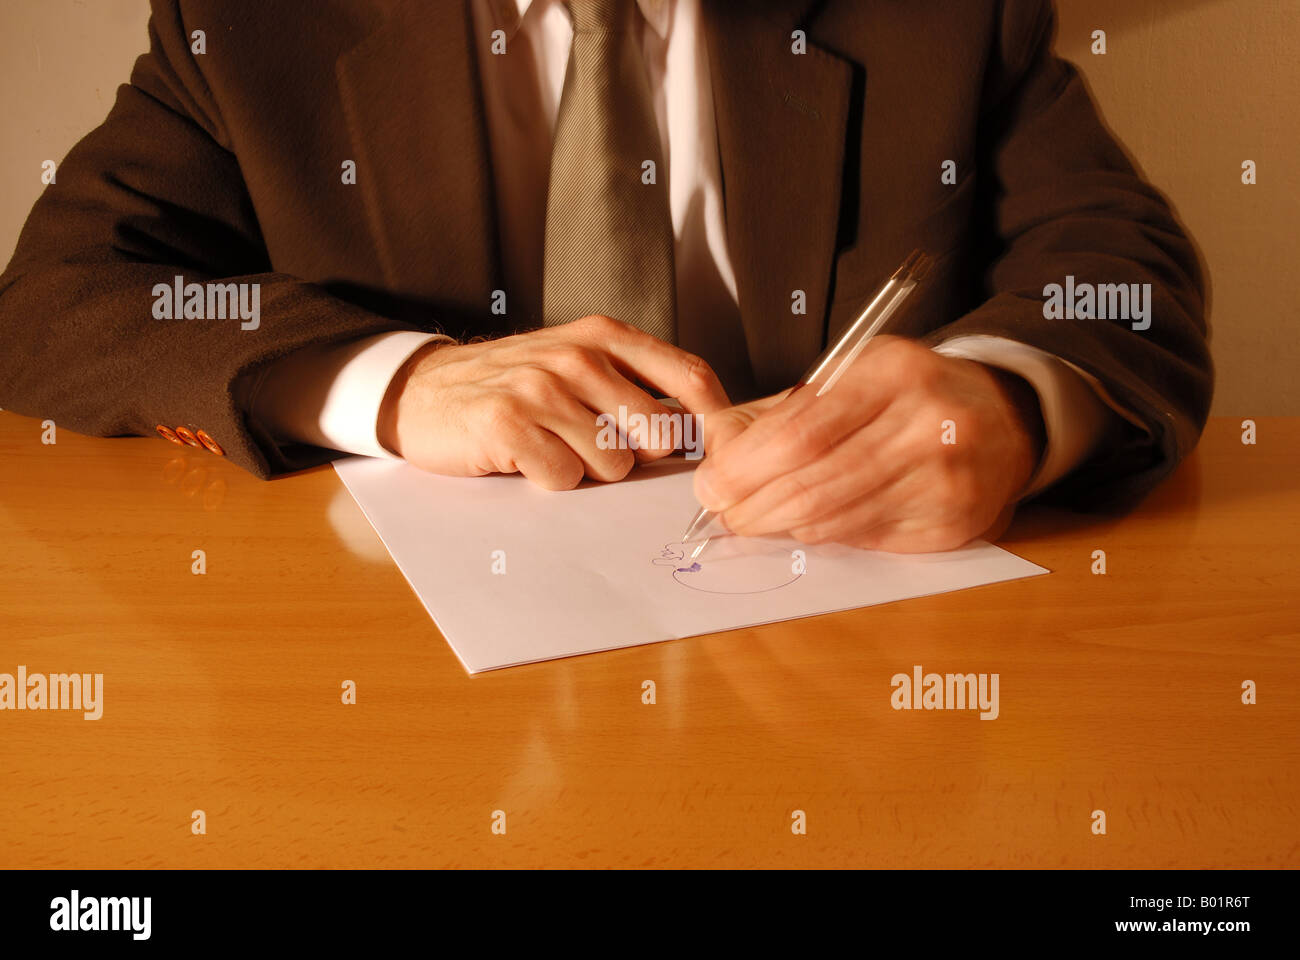 Hand gestures: drawing. Stock Photo